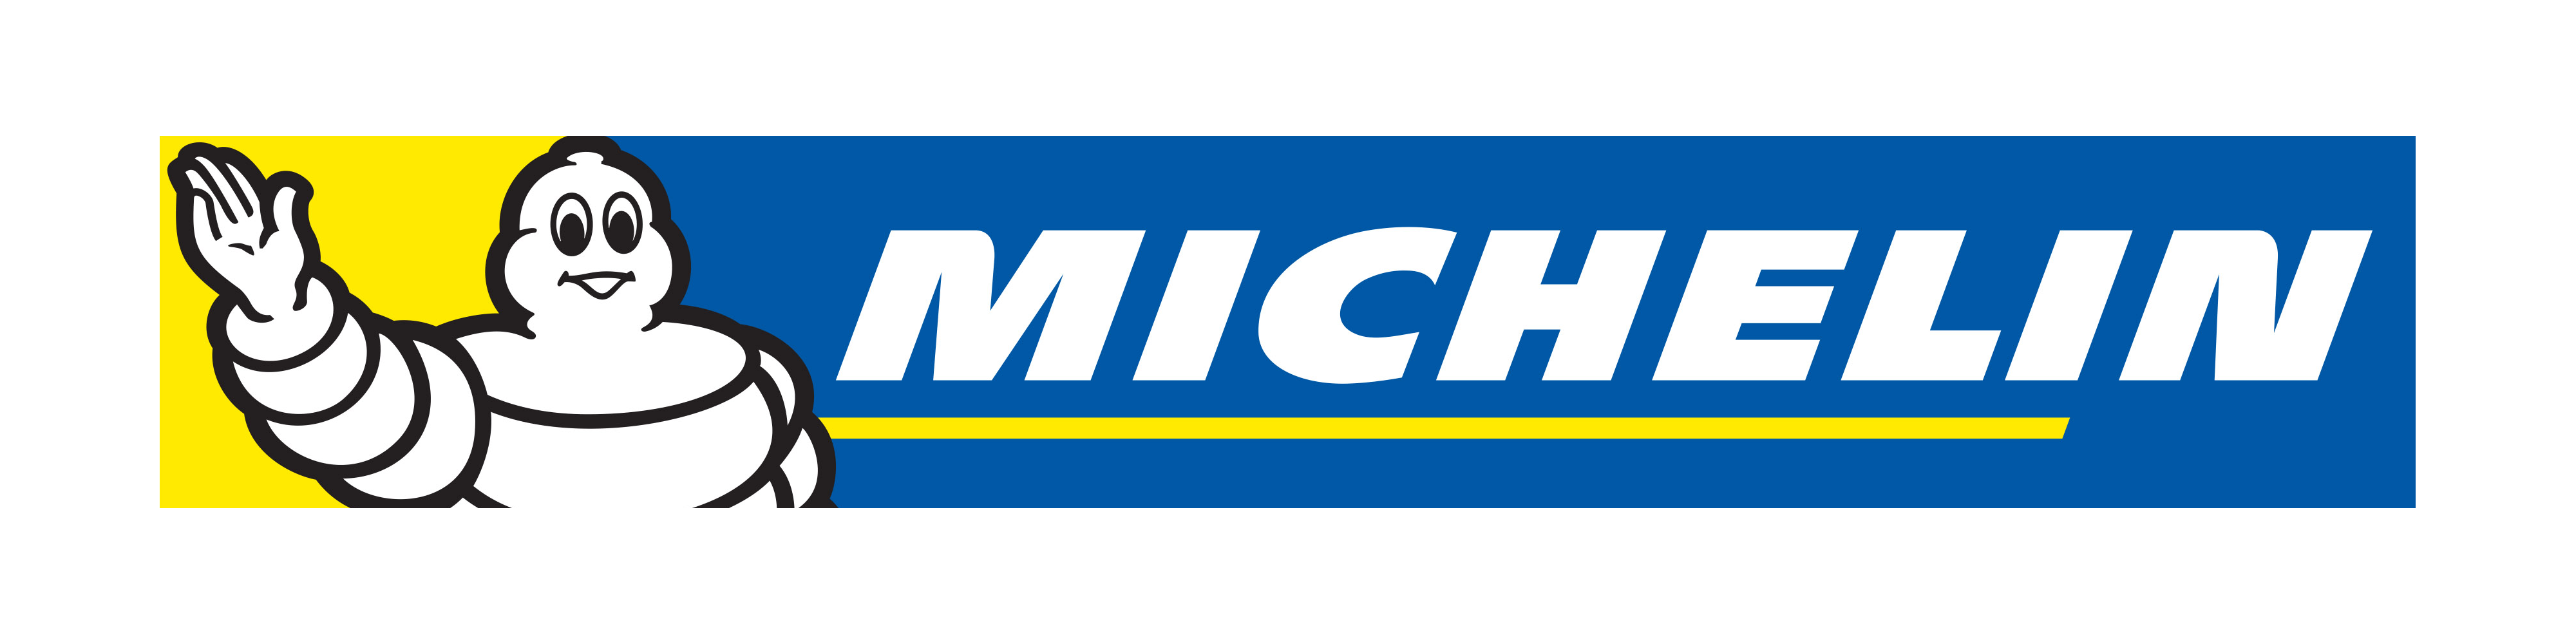 Michelin Logo, HD Png, Information.